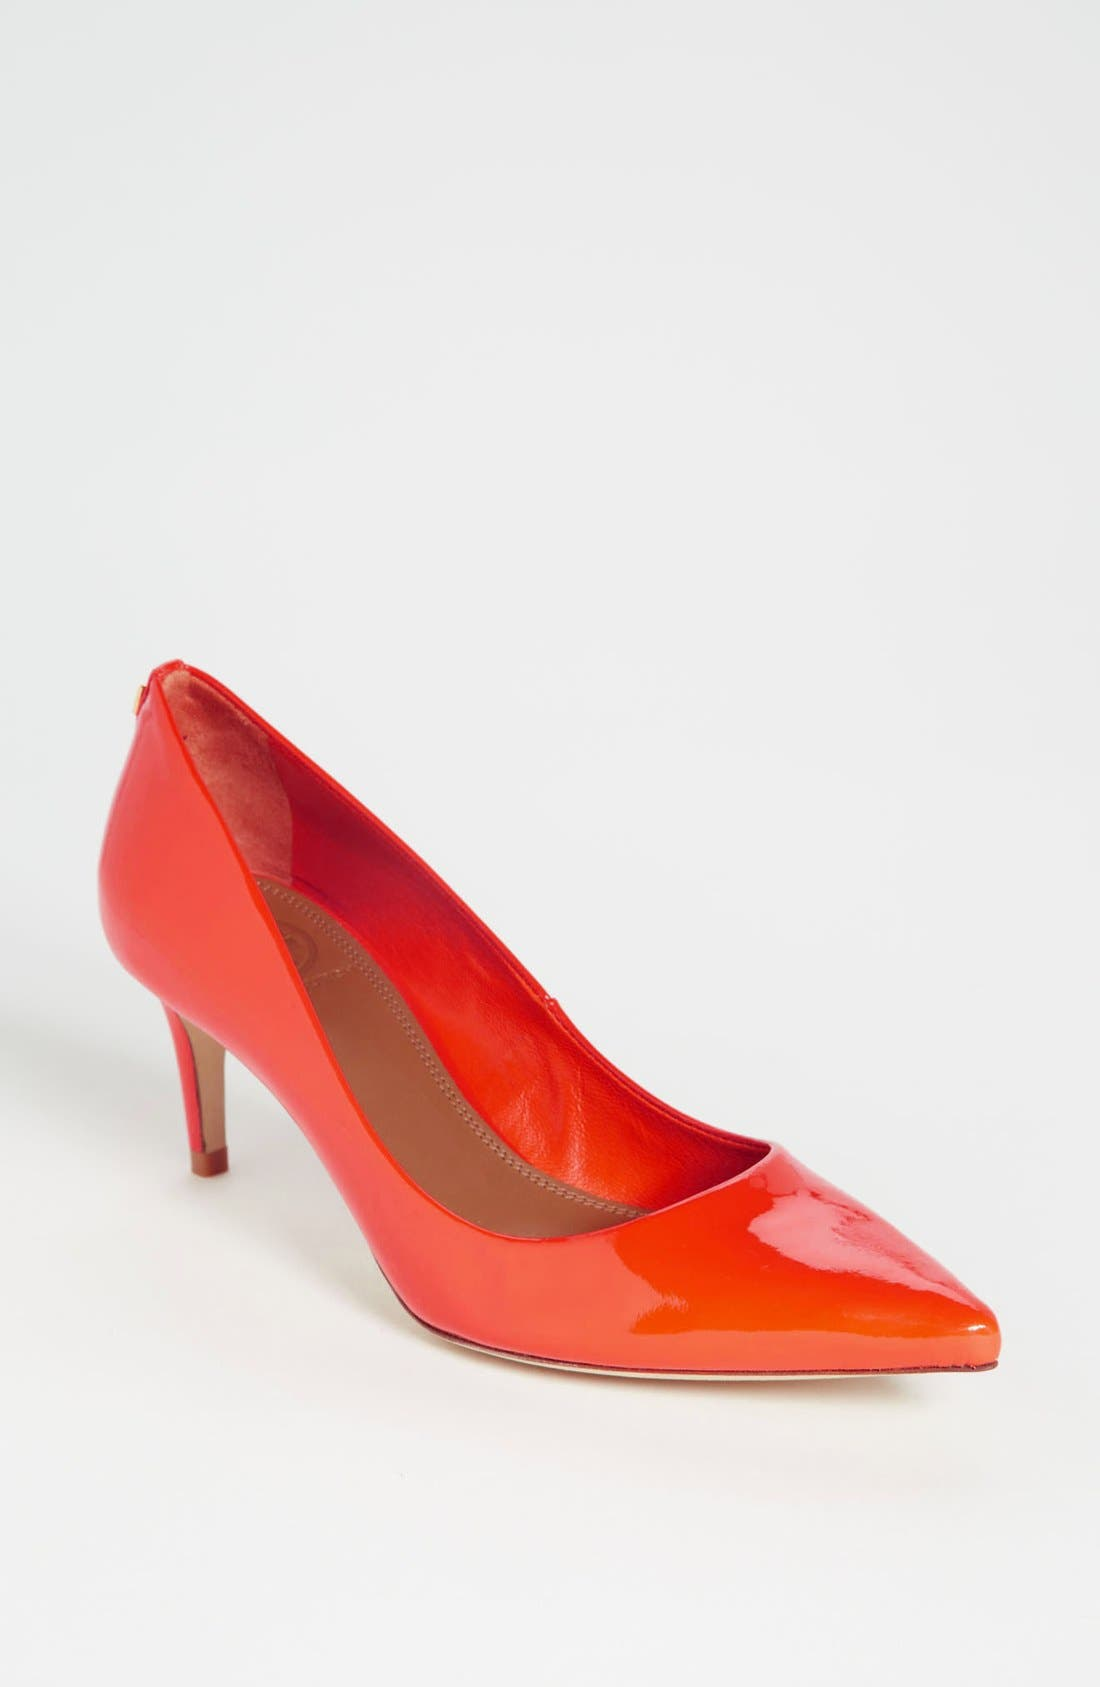 Alternate Image 1 Selected - Tory Burch 'Ivy' Pump  (Nordstrom Exclusive)